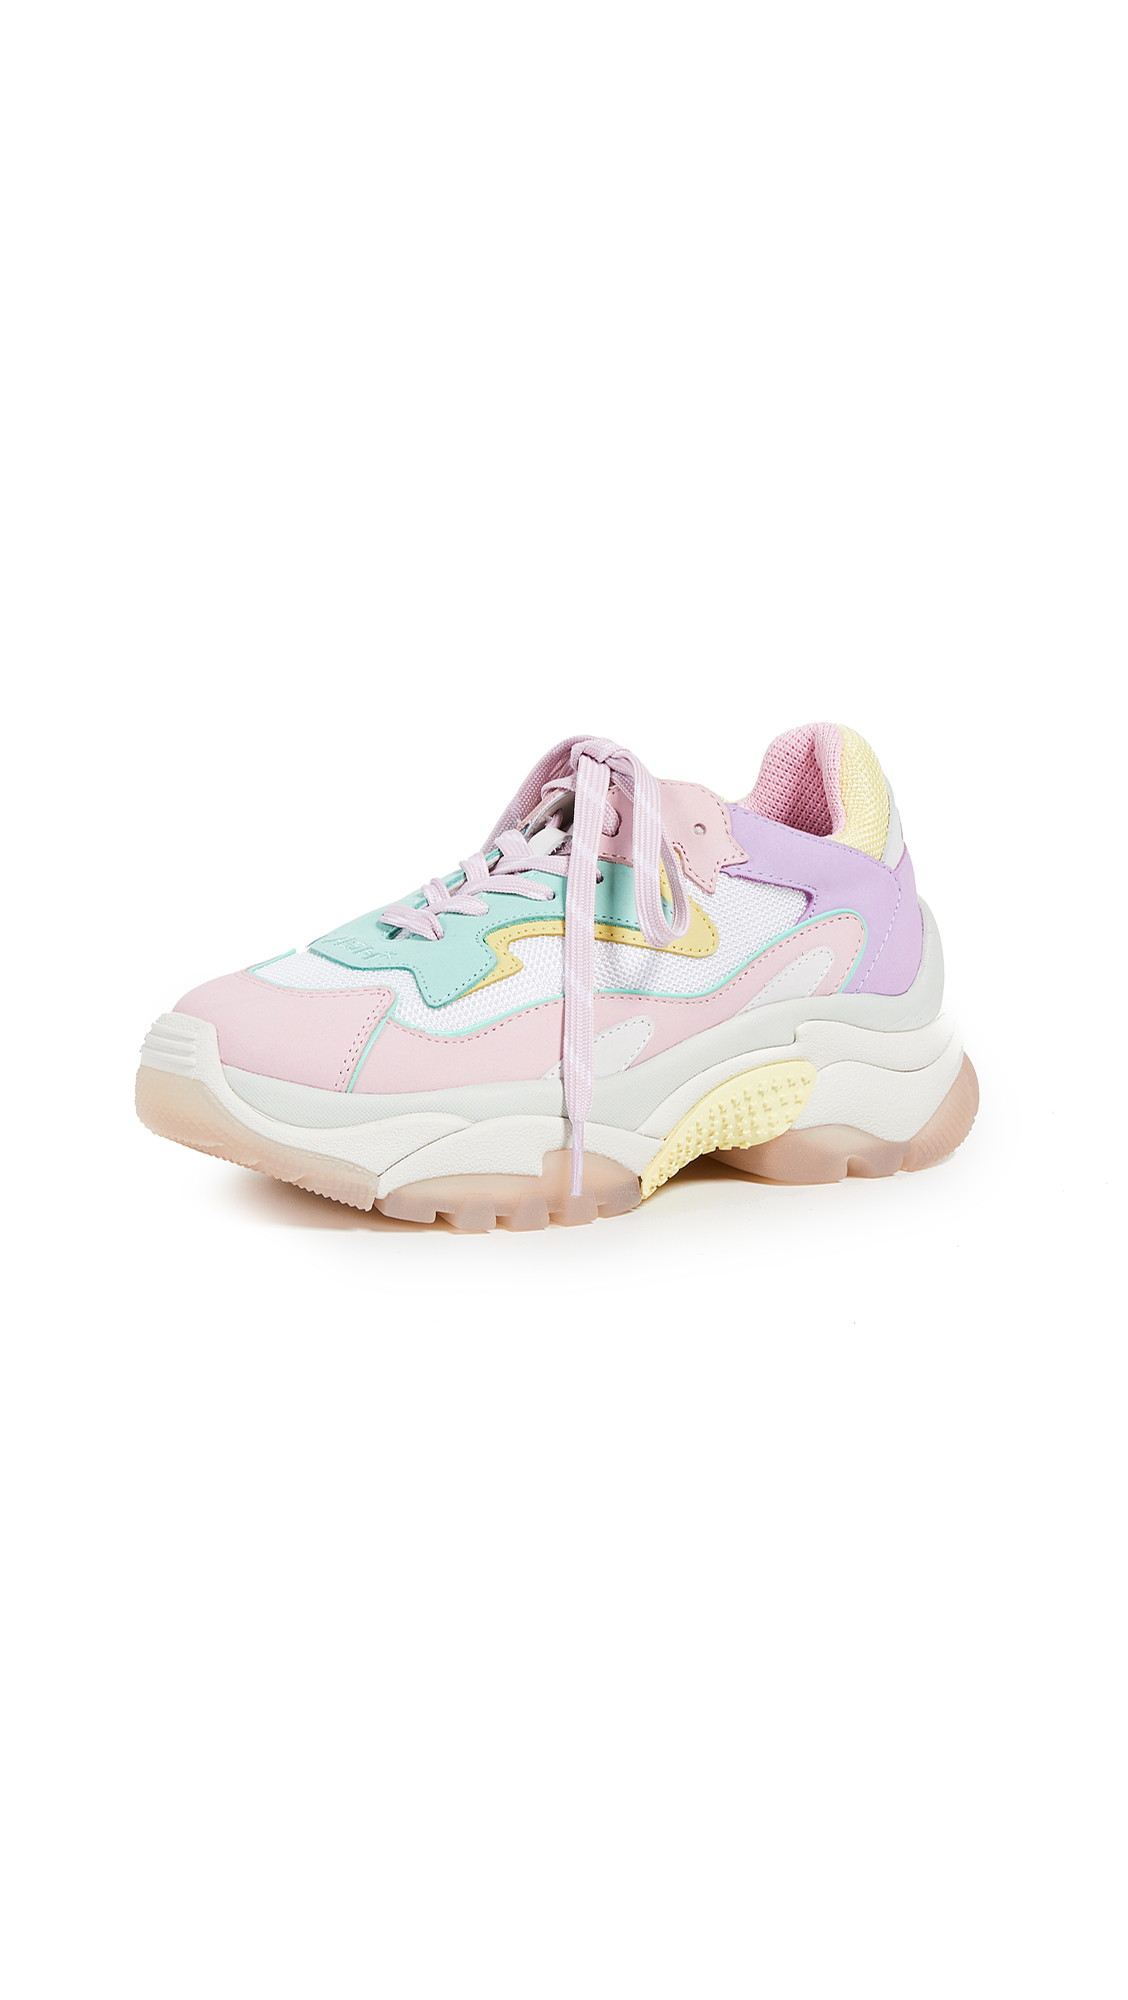 Ash Addict Bis Trainers - Baby Rose/Mint/White/Chick